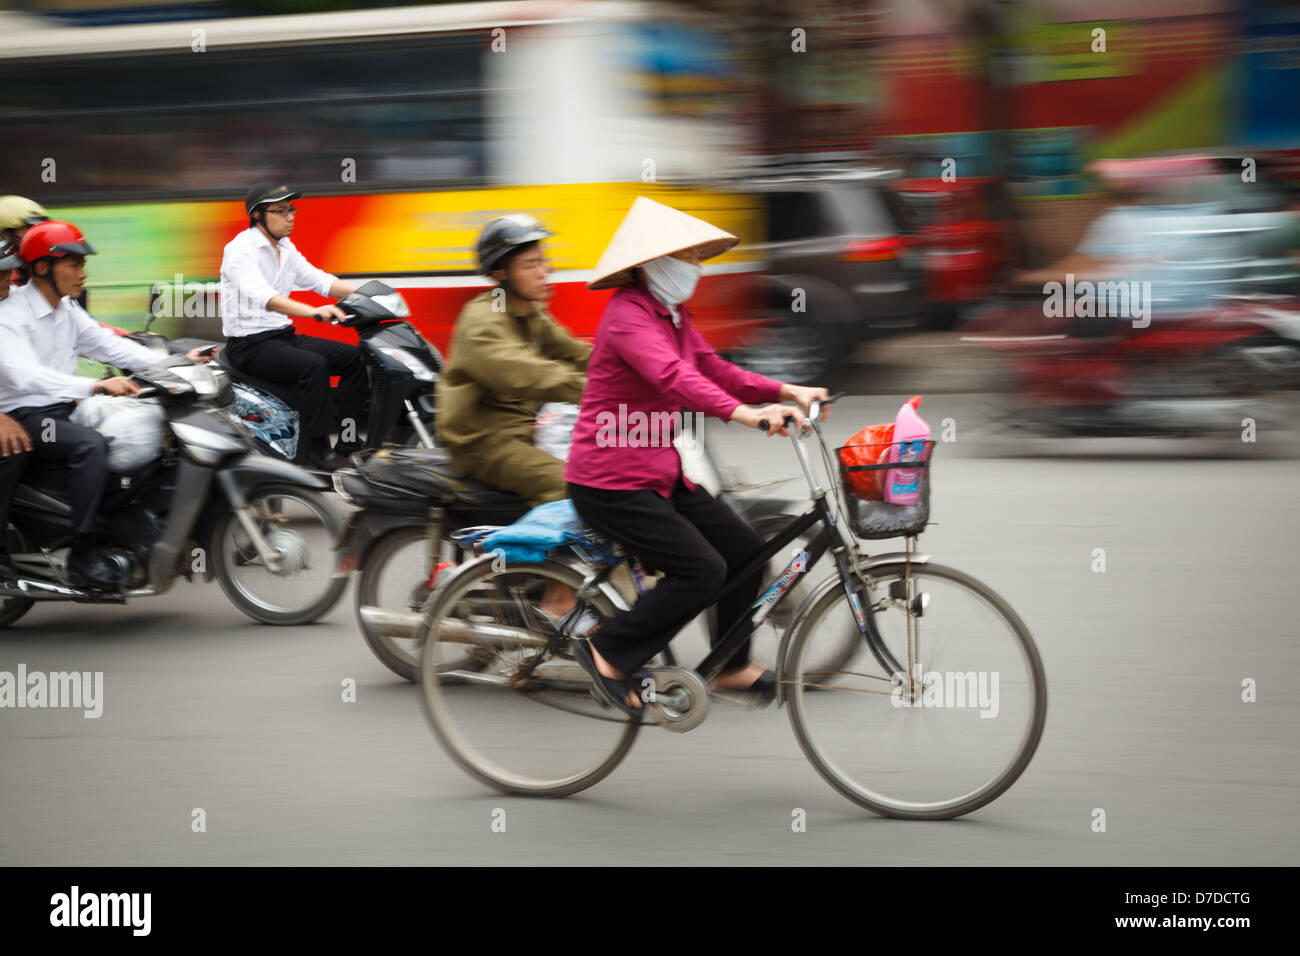 Traffic in Hanoi, Vietnam - Stock Image